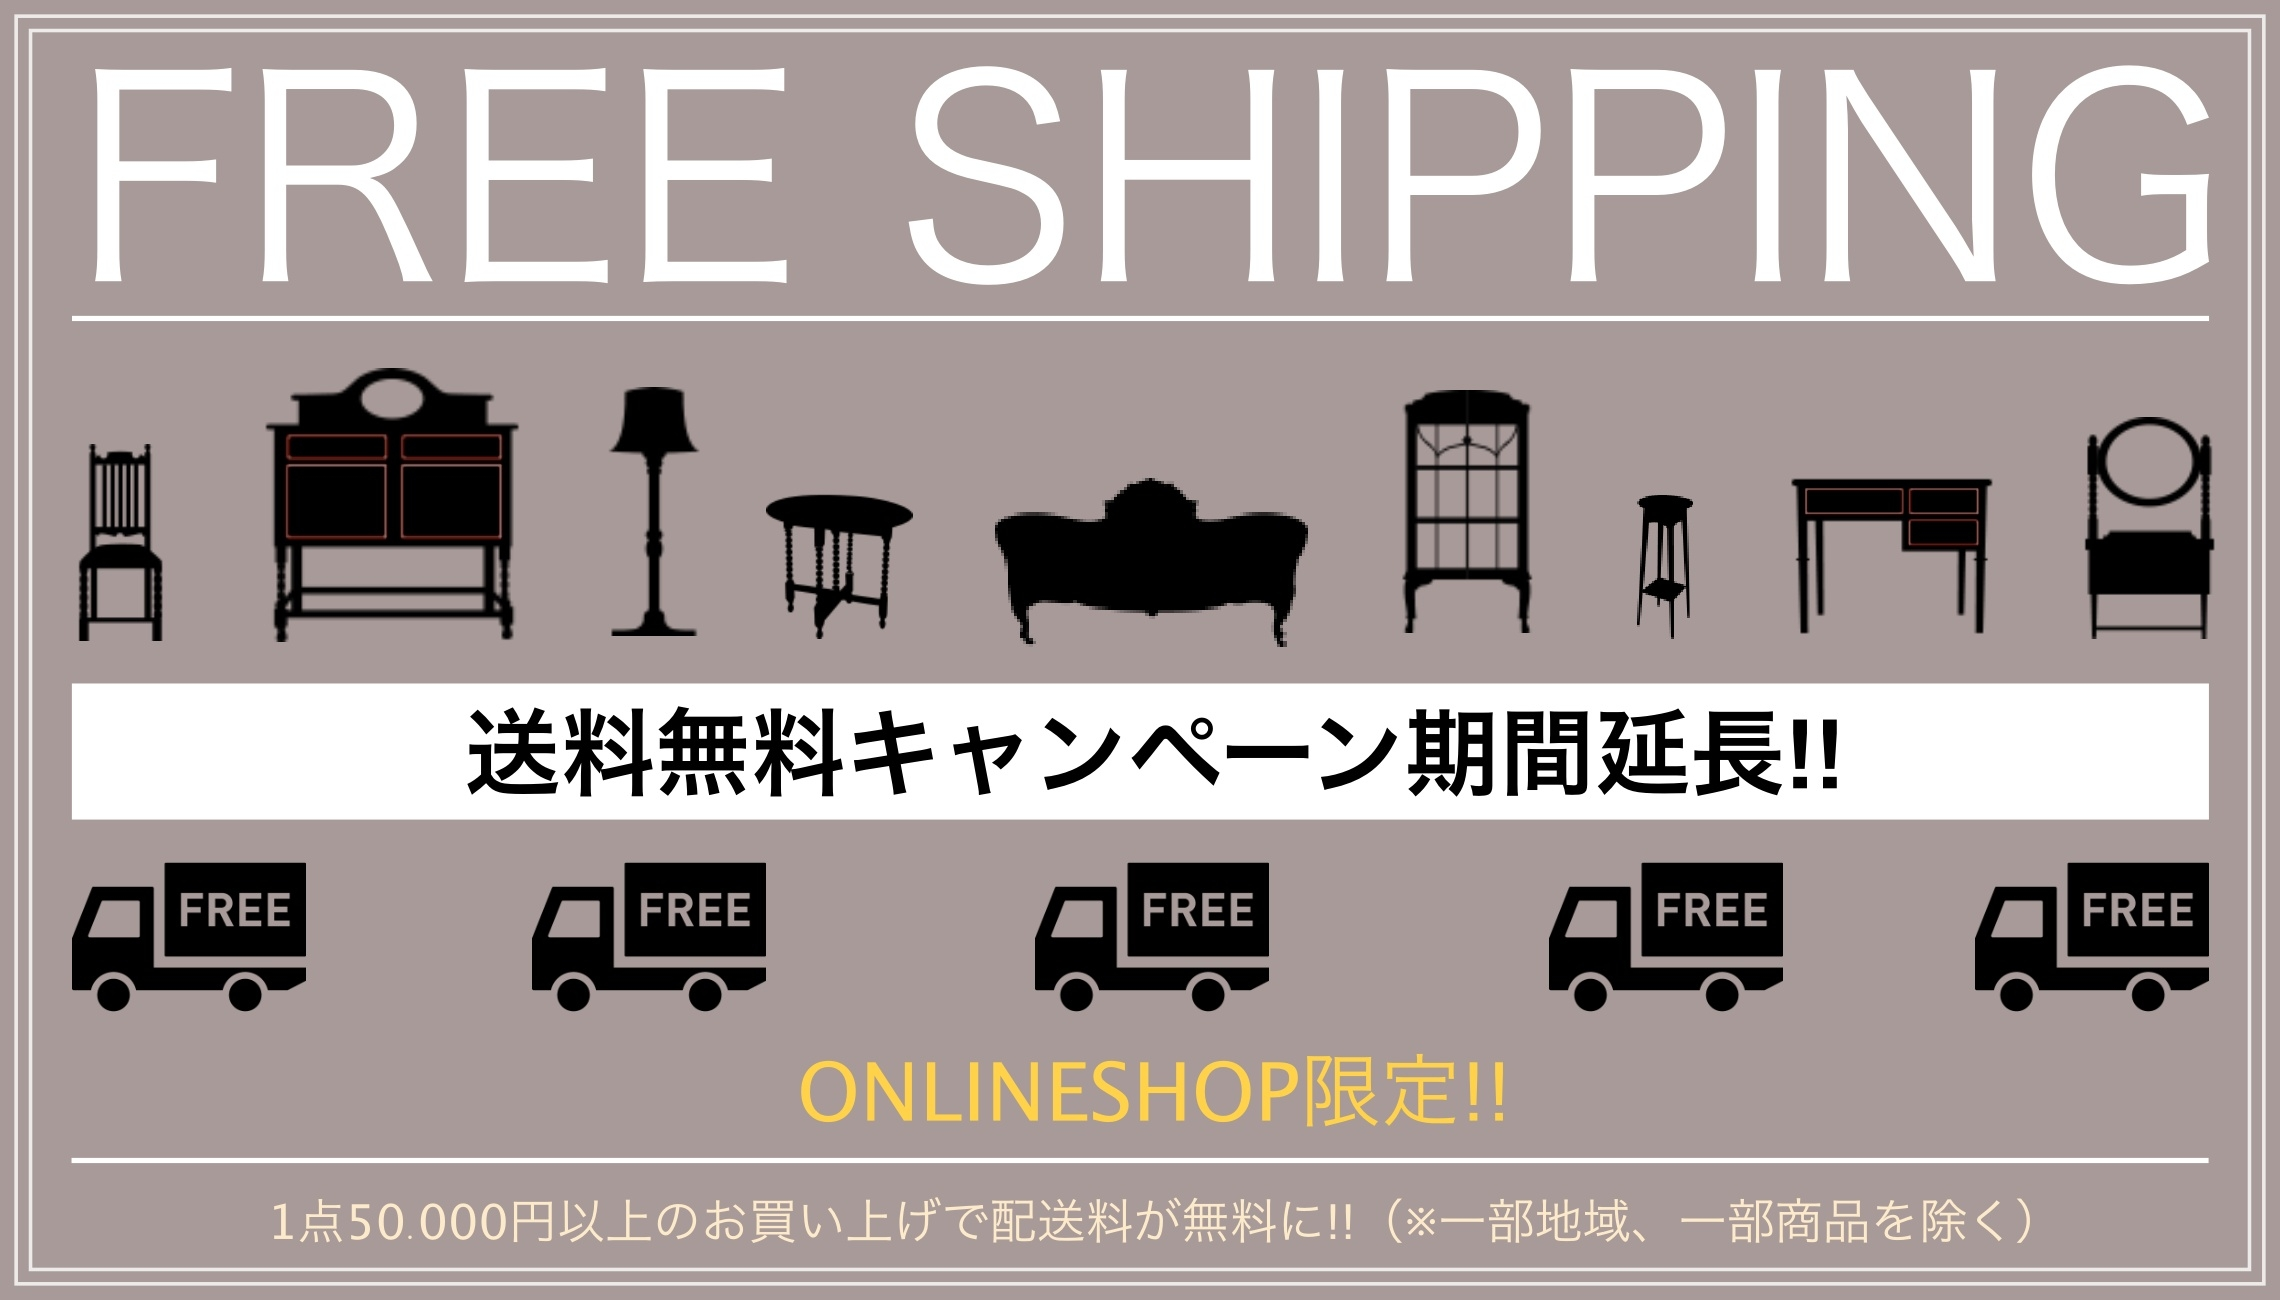 E-SHOP GEOGRAPHICA配送設置無料キャンペーン開催中!